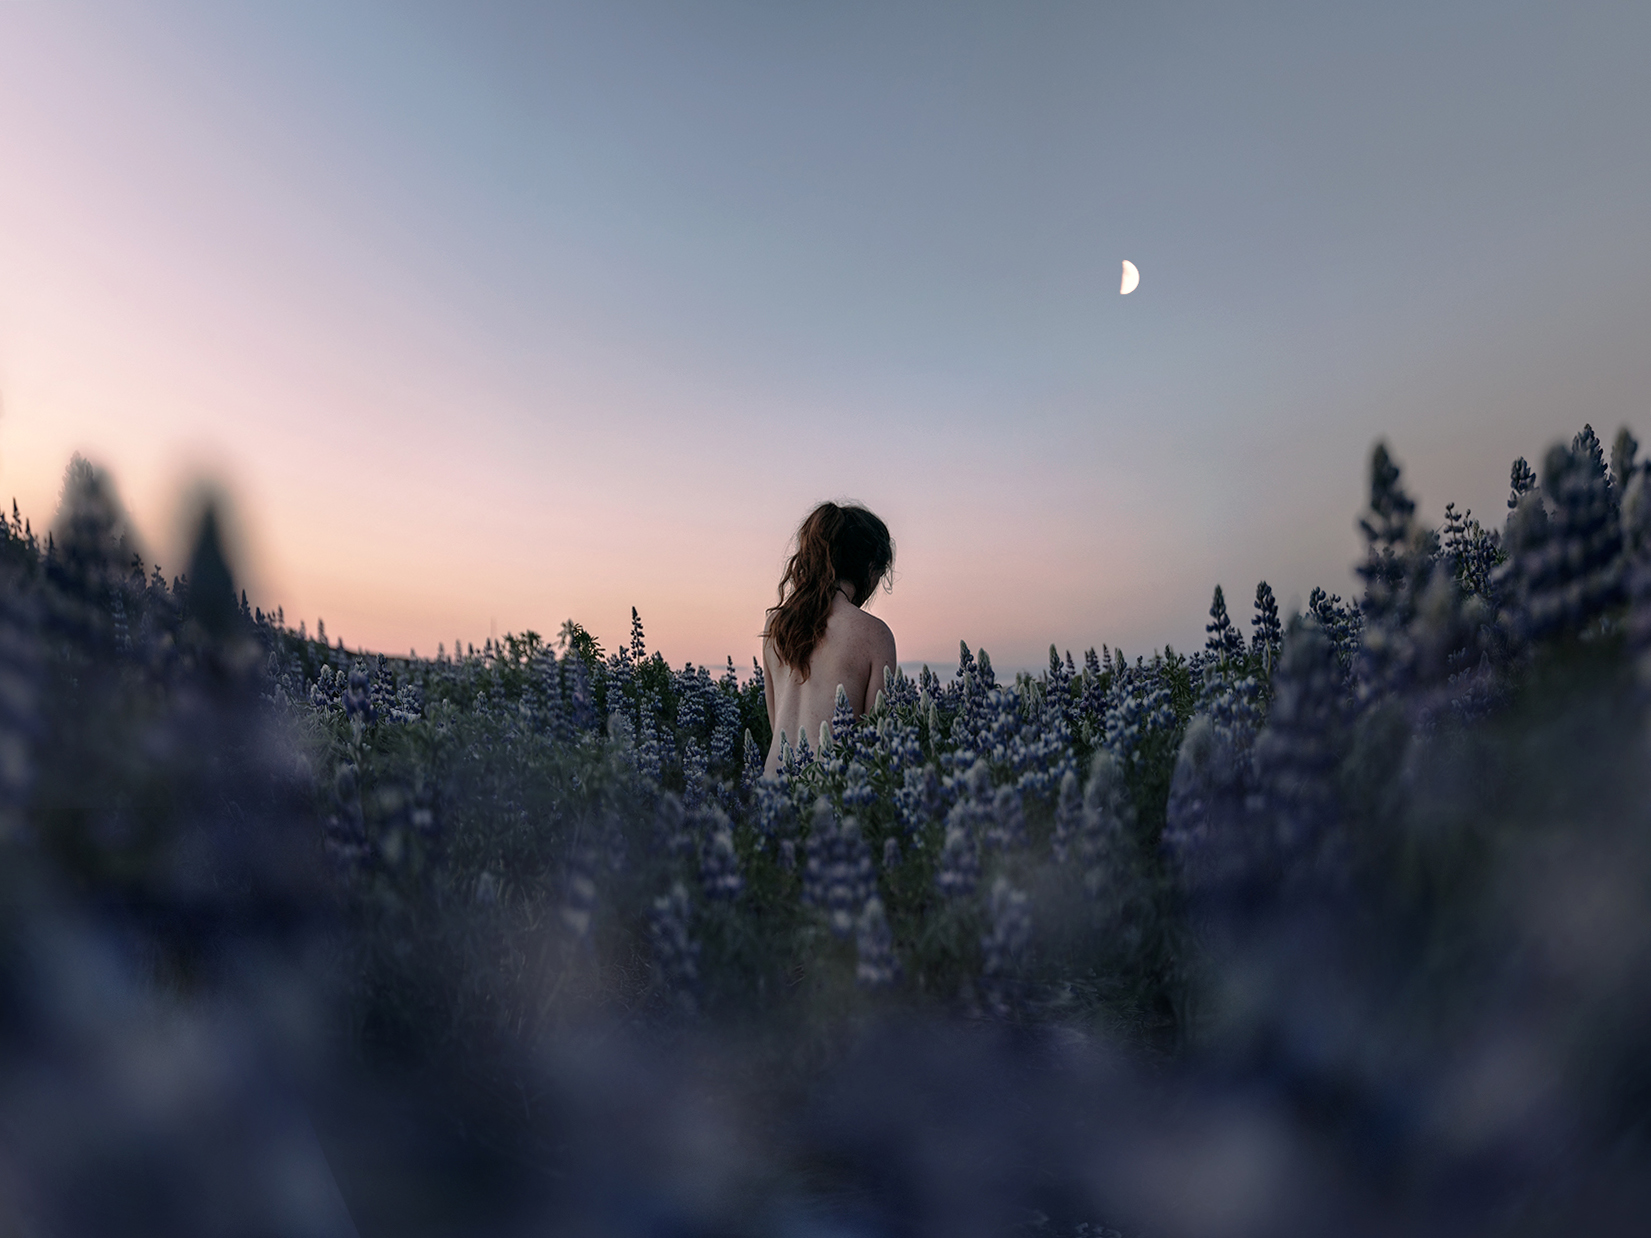 Fine art photography showing the nude back of a woman in a lupine field at moonrise.